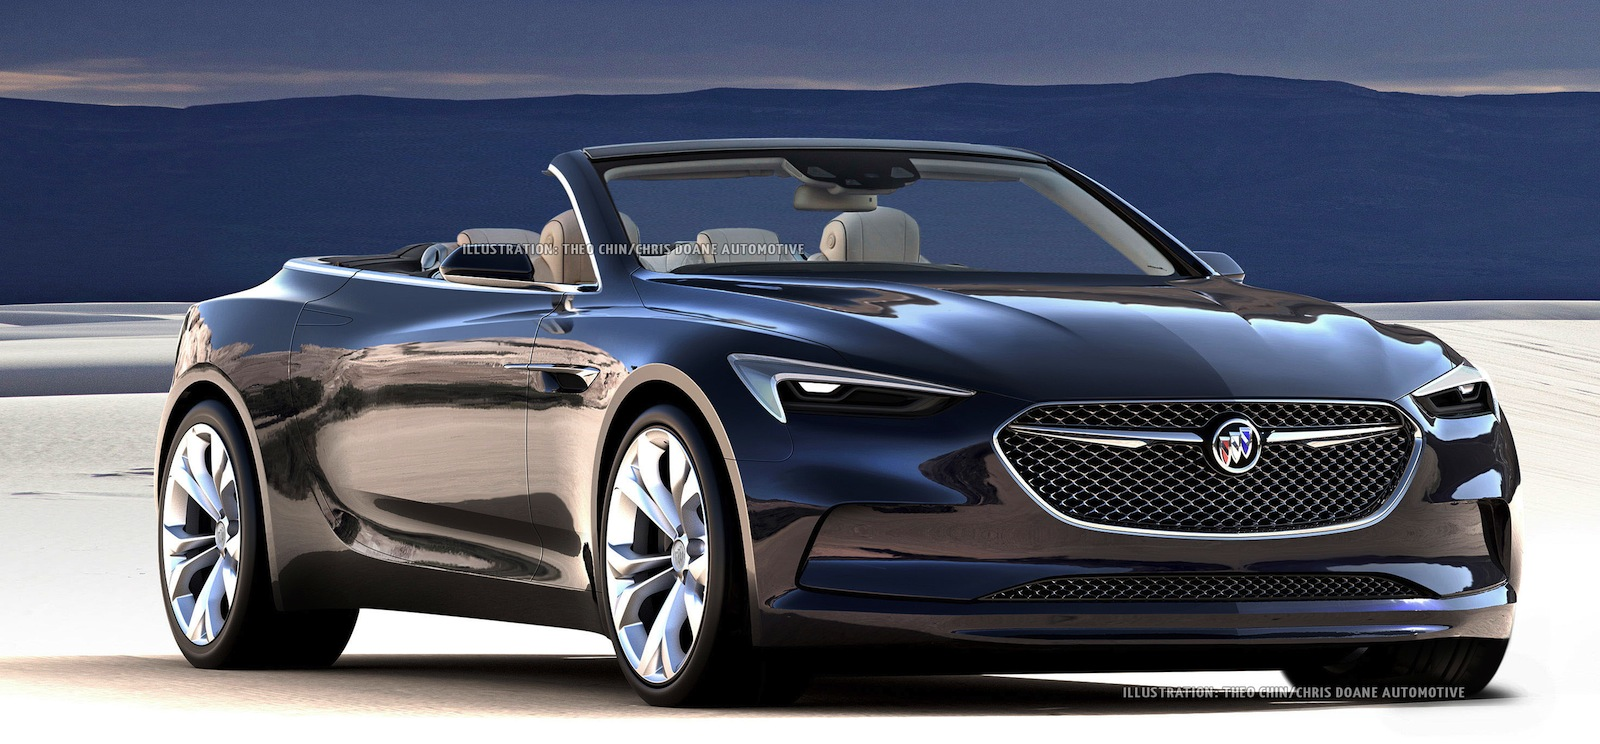 Buick S Stunning New Concept Car Looks Even Better As A